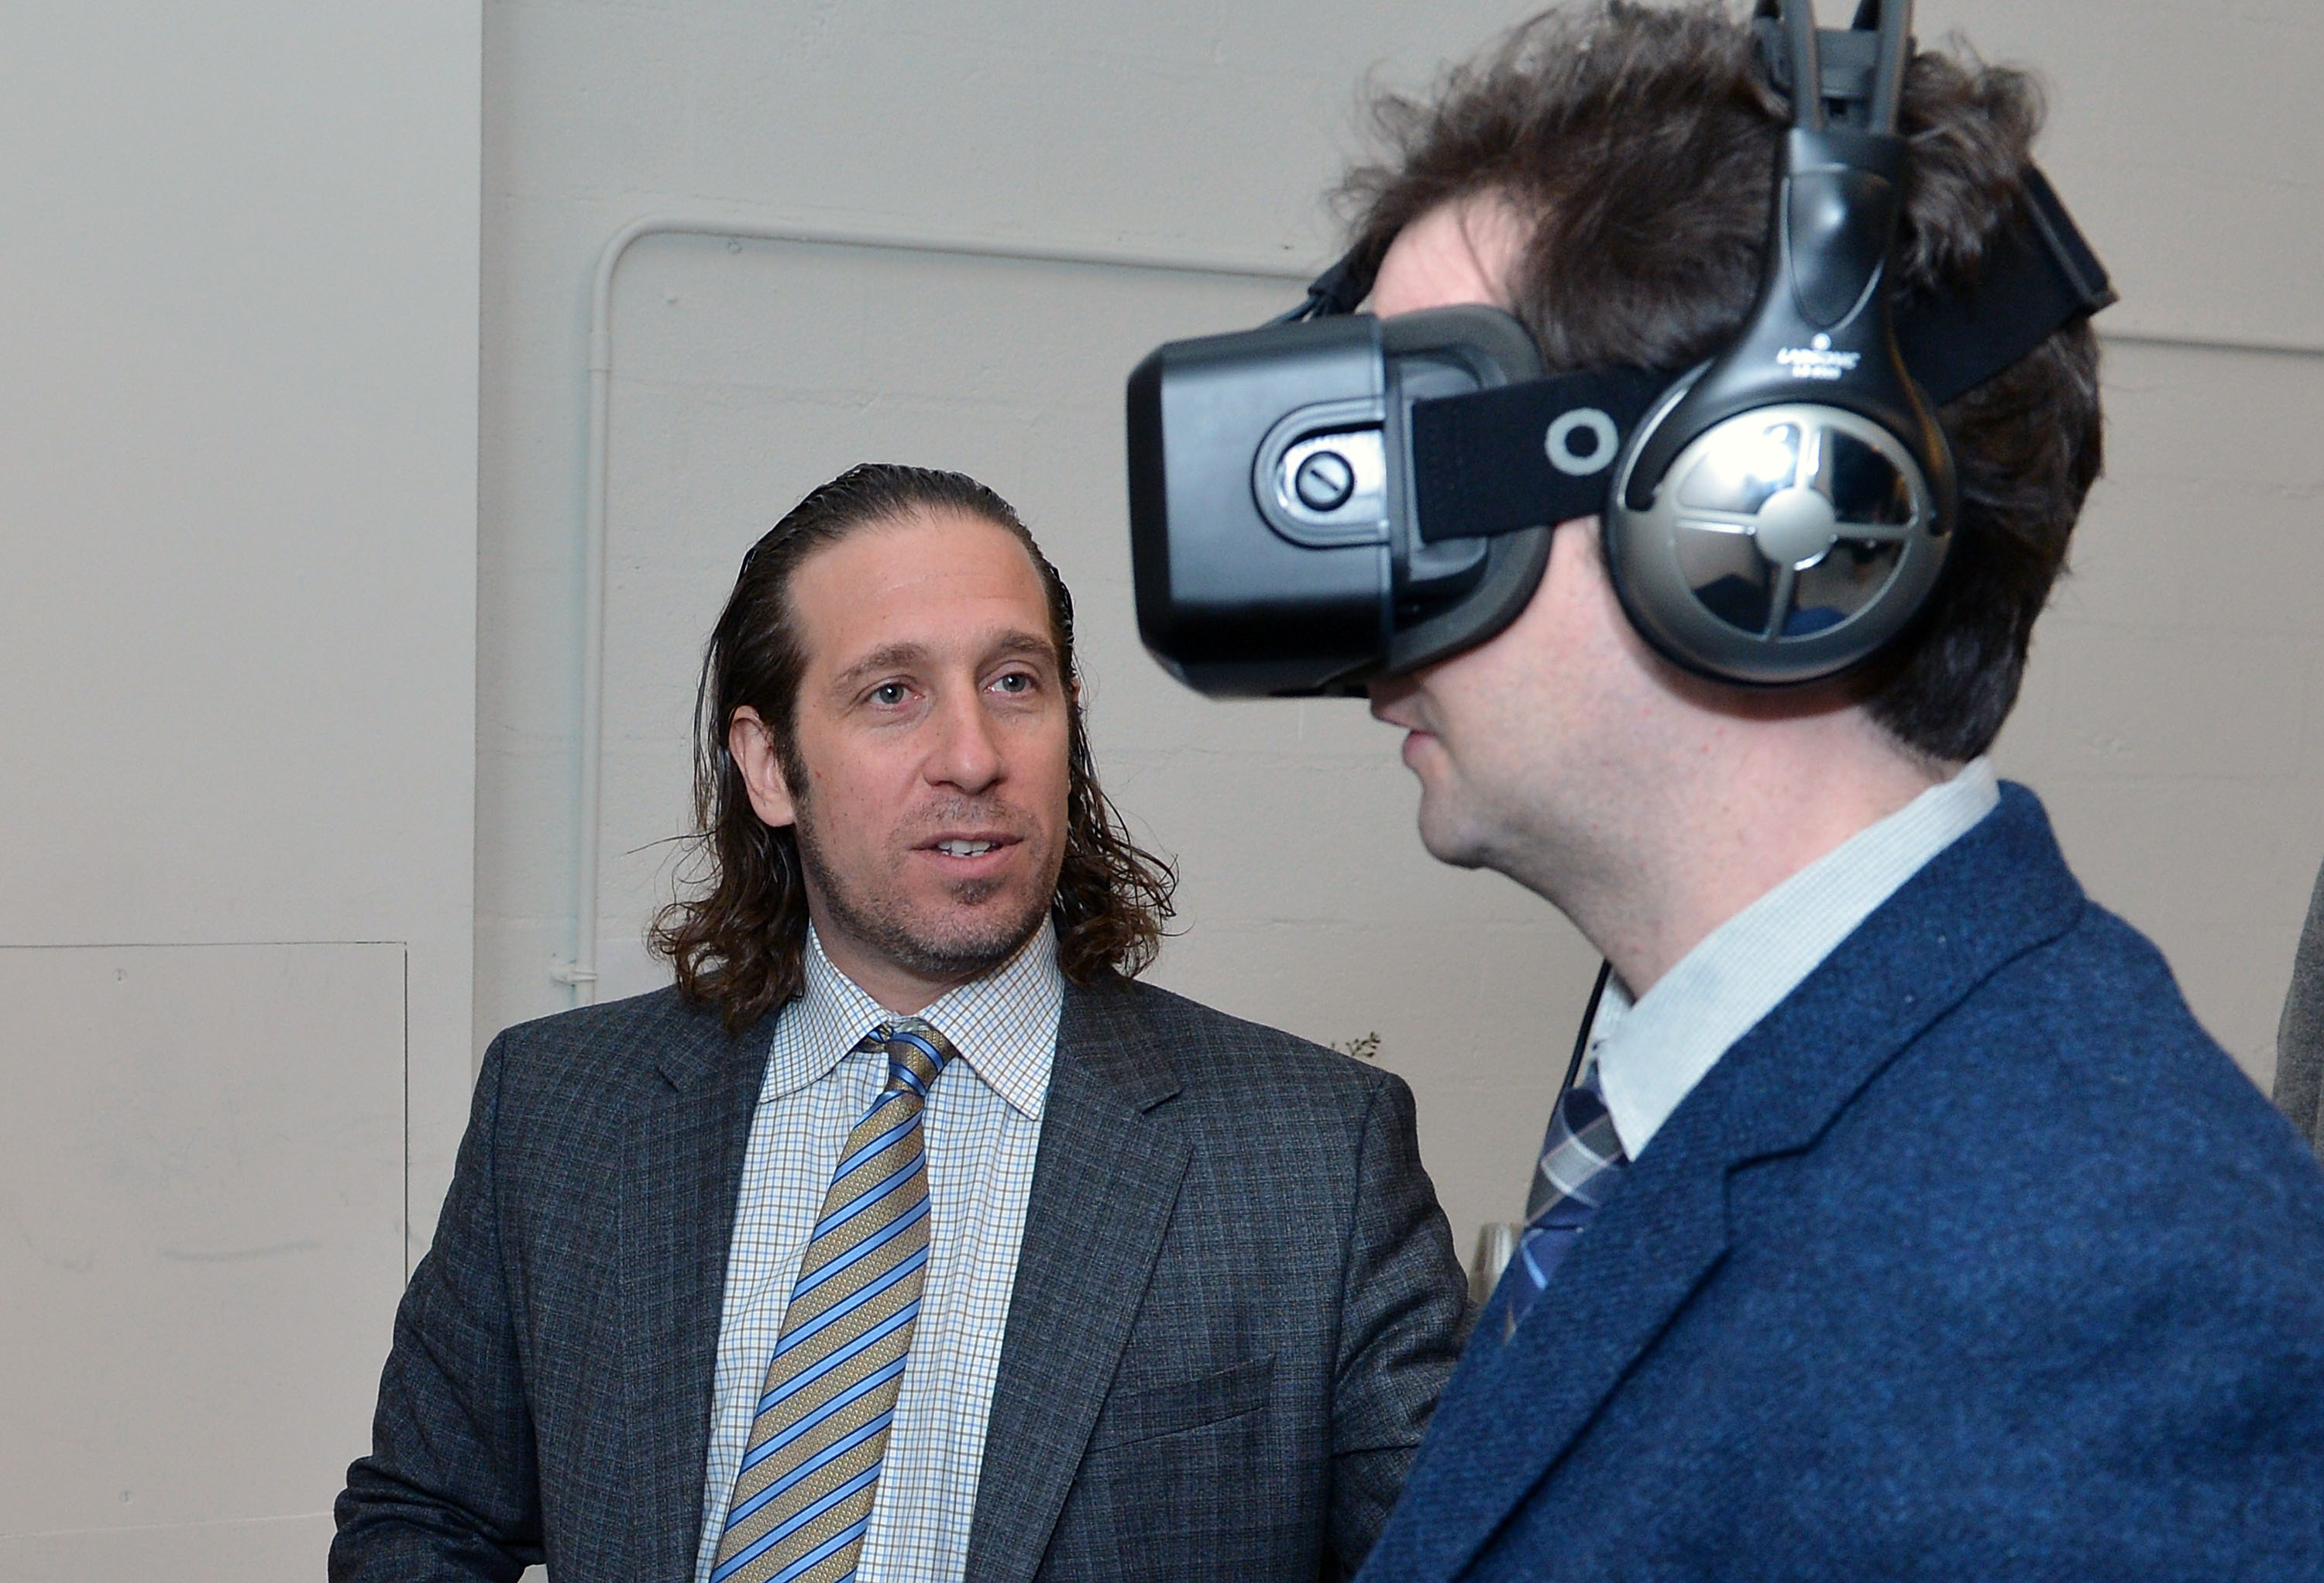 Stanford Professor Jeremy Bailenson (left) coaches a person wearing a VR headset